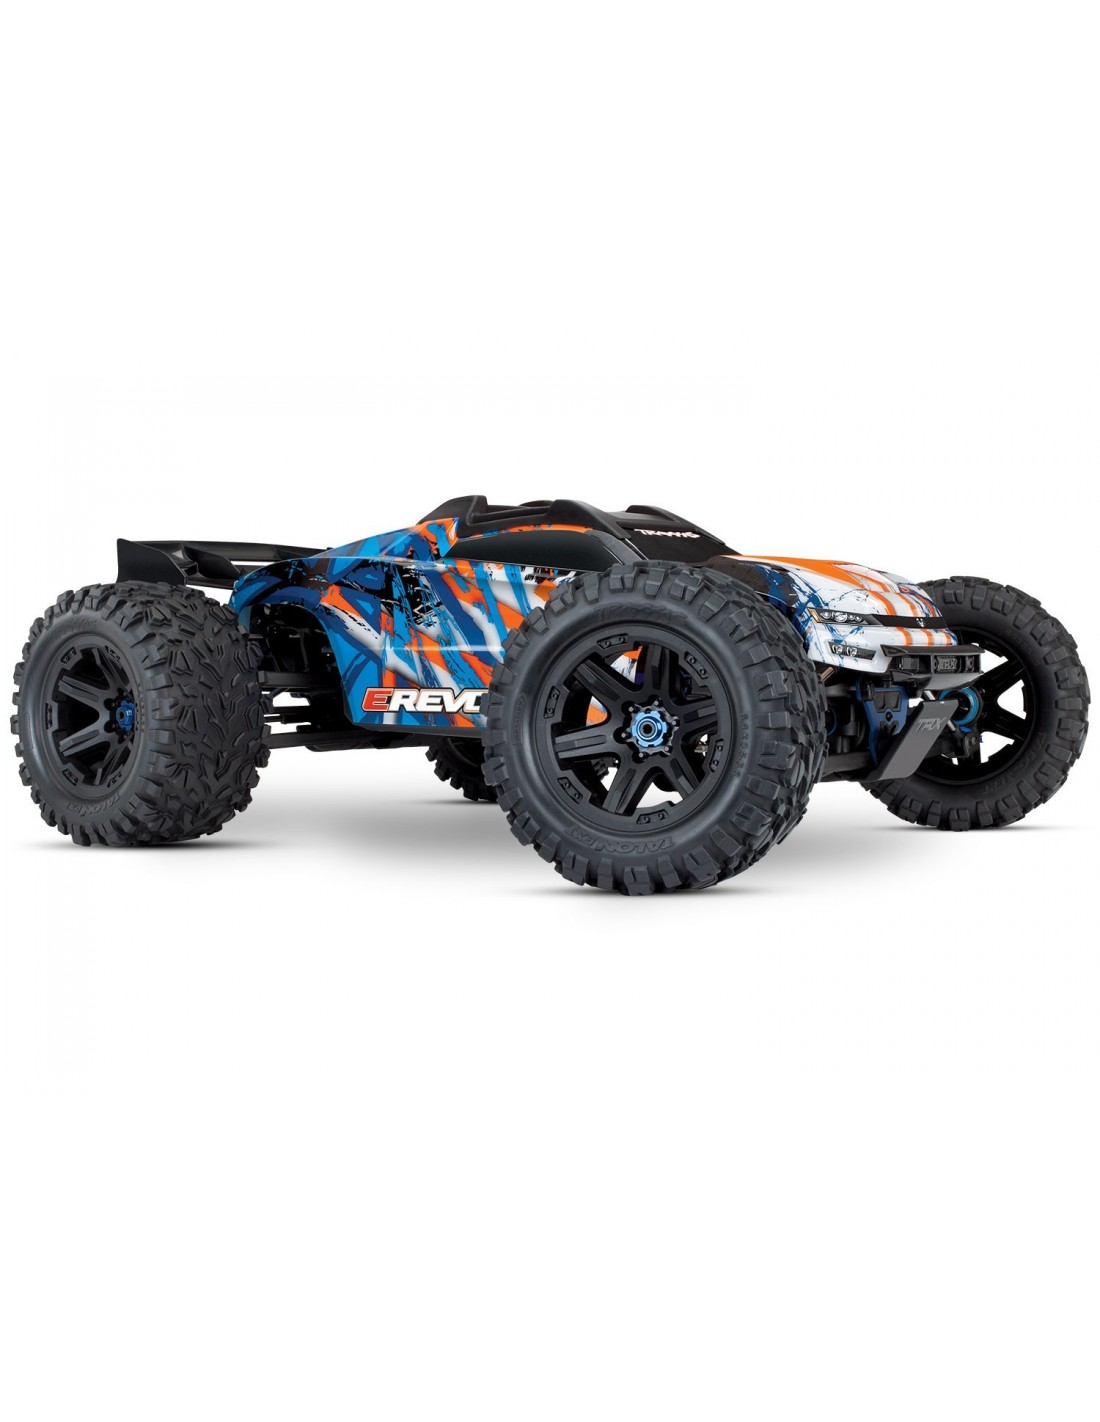 Traxxas E Revo Vxl 20 Rtr 4wd Electric Monster Truck 2018 Thread Stampede 4x4 Press Release And Pics